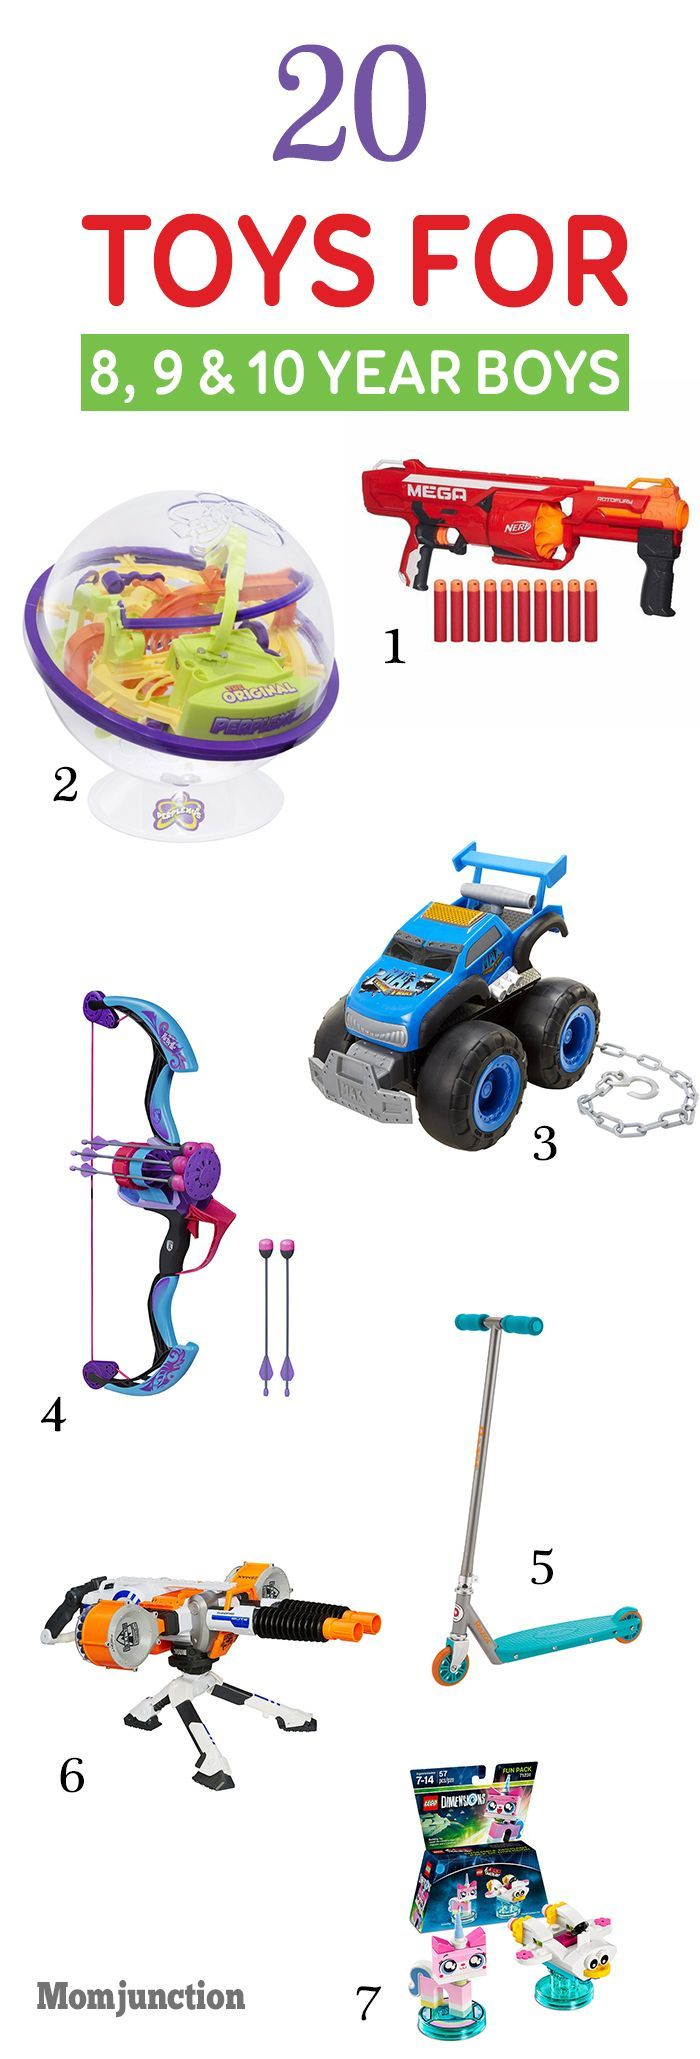 Toys For 8 Year Boys : Best toys for year old girls images on